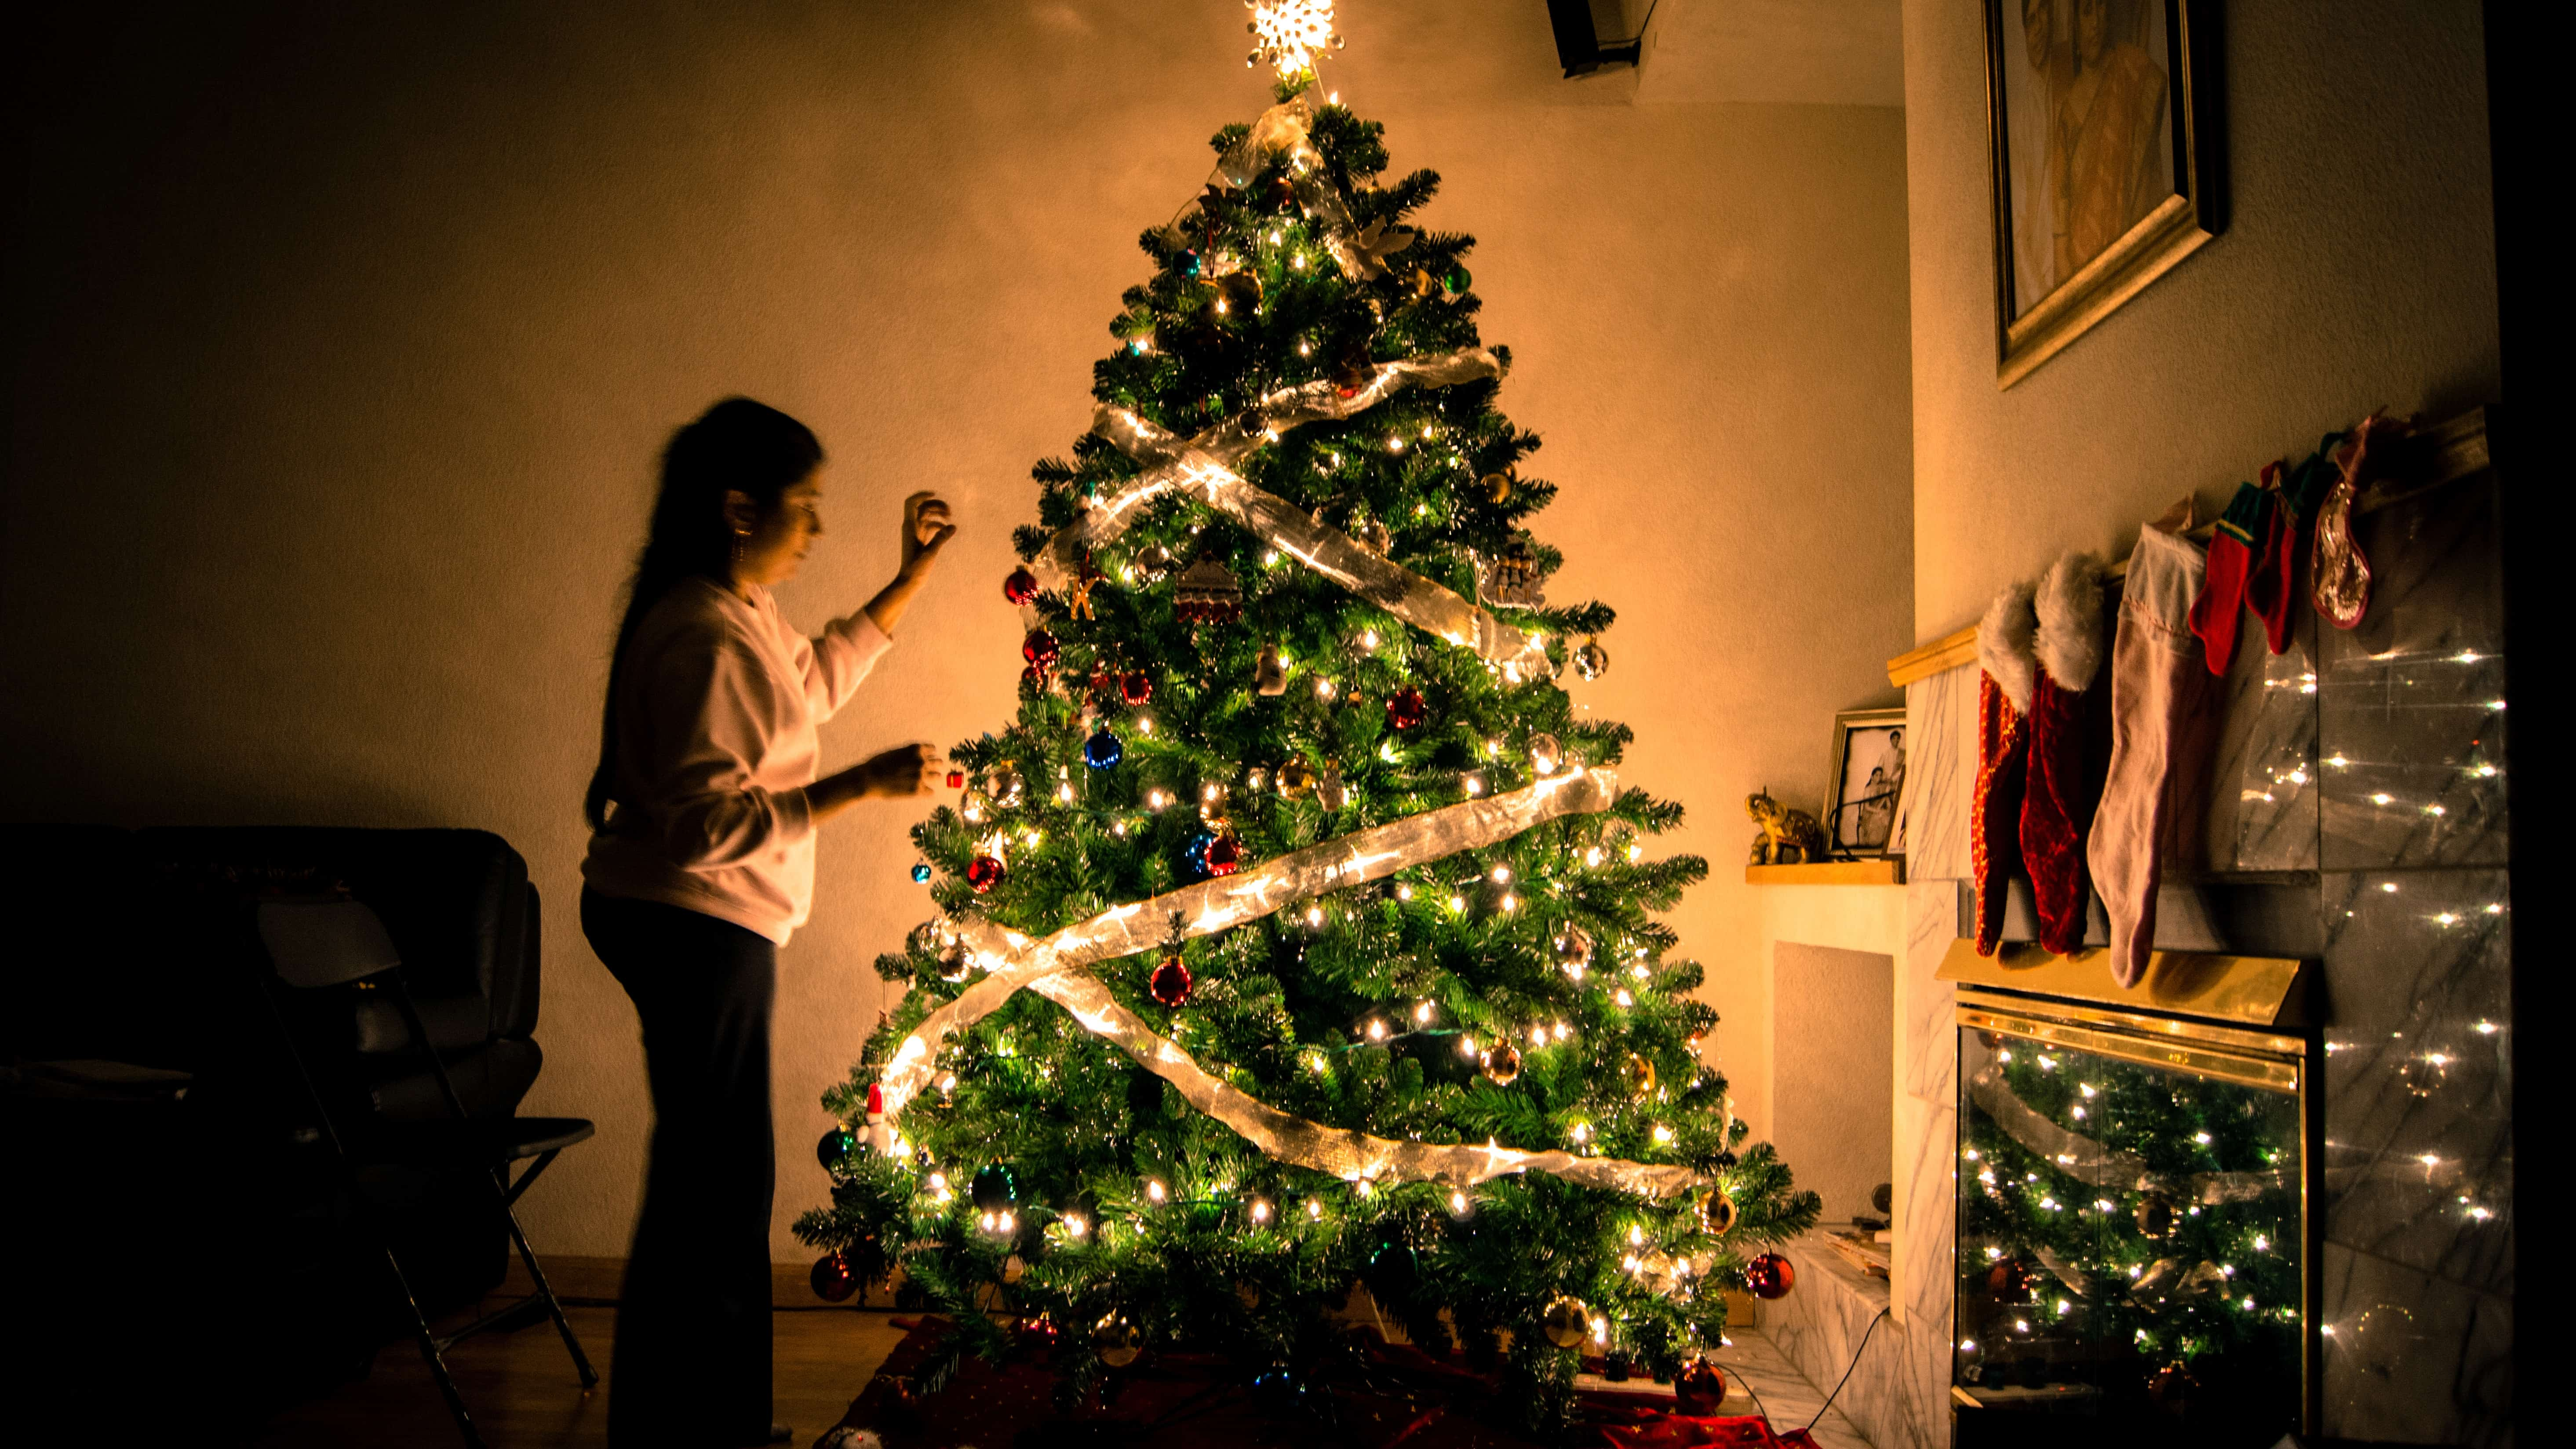 Top 5 holiday eating mistakes plus dietitian tips solutions christmas tree solutioingenieria Choice Image